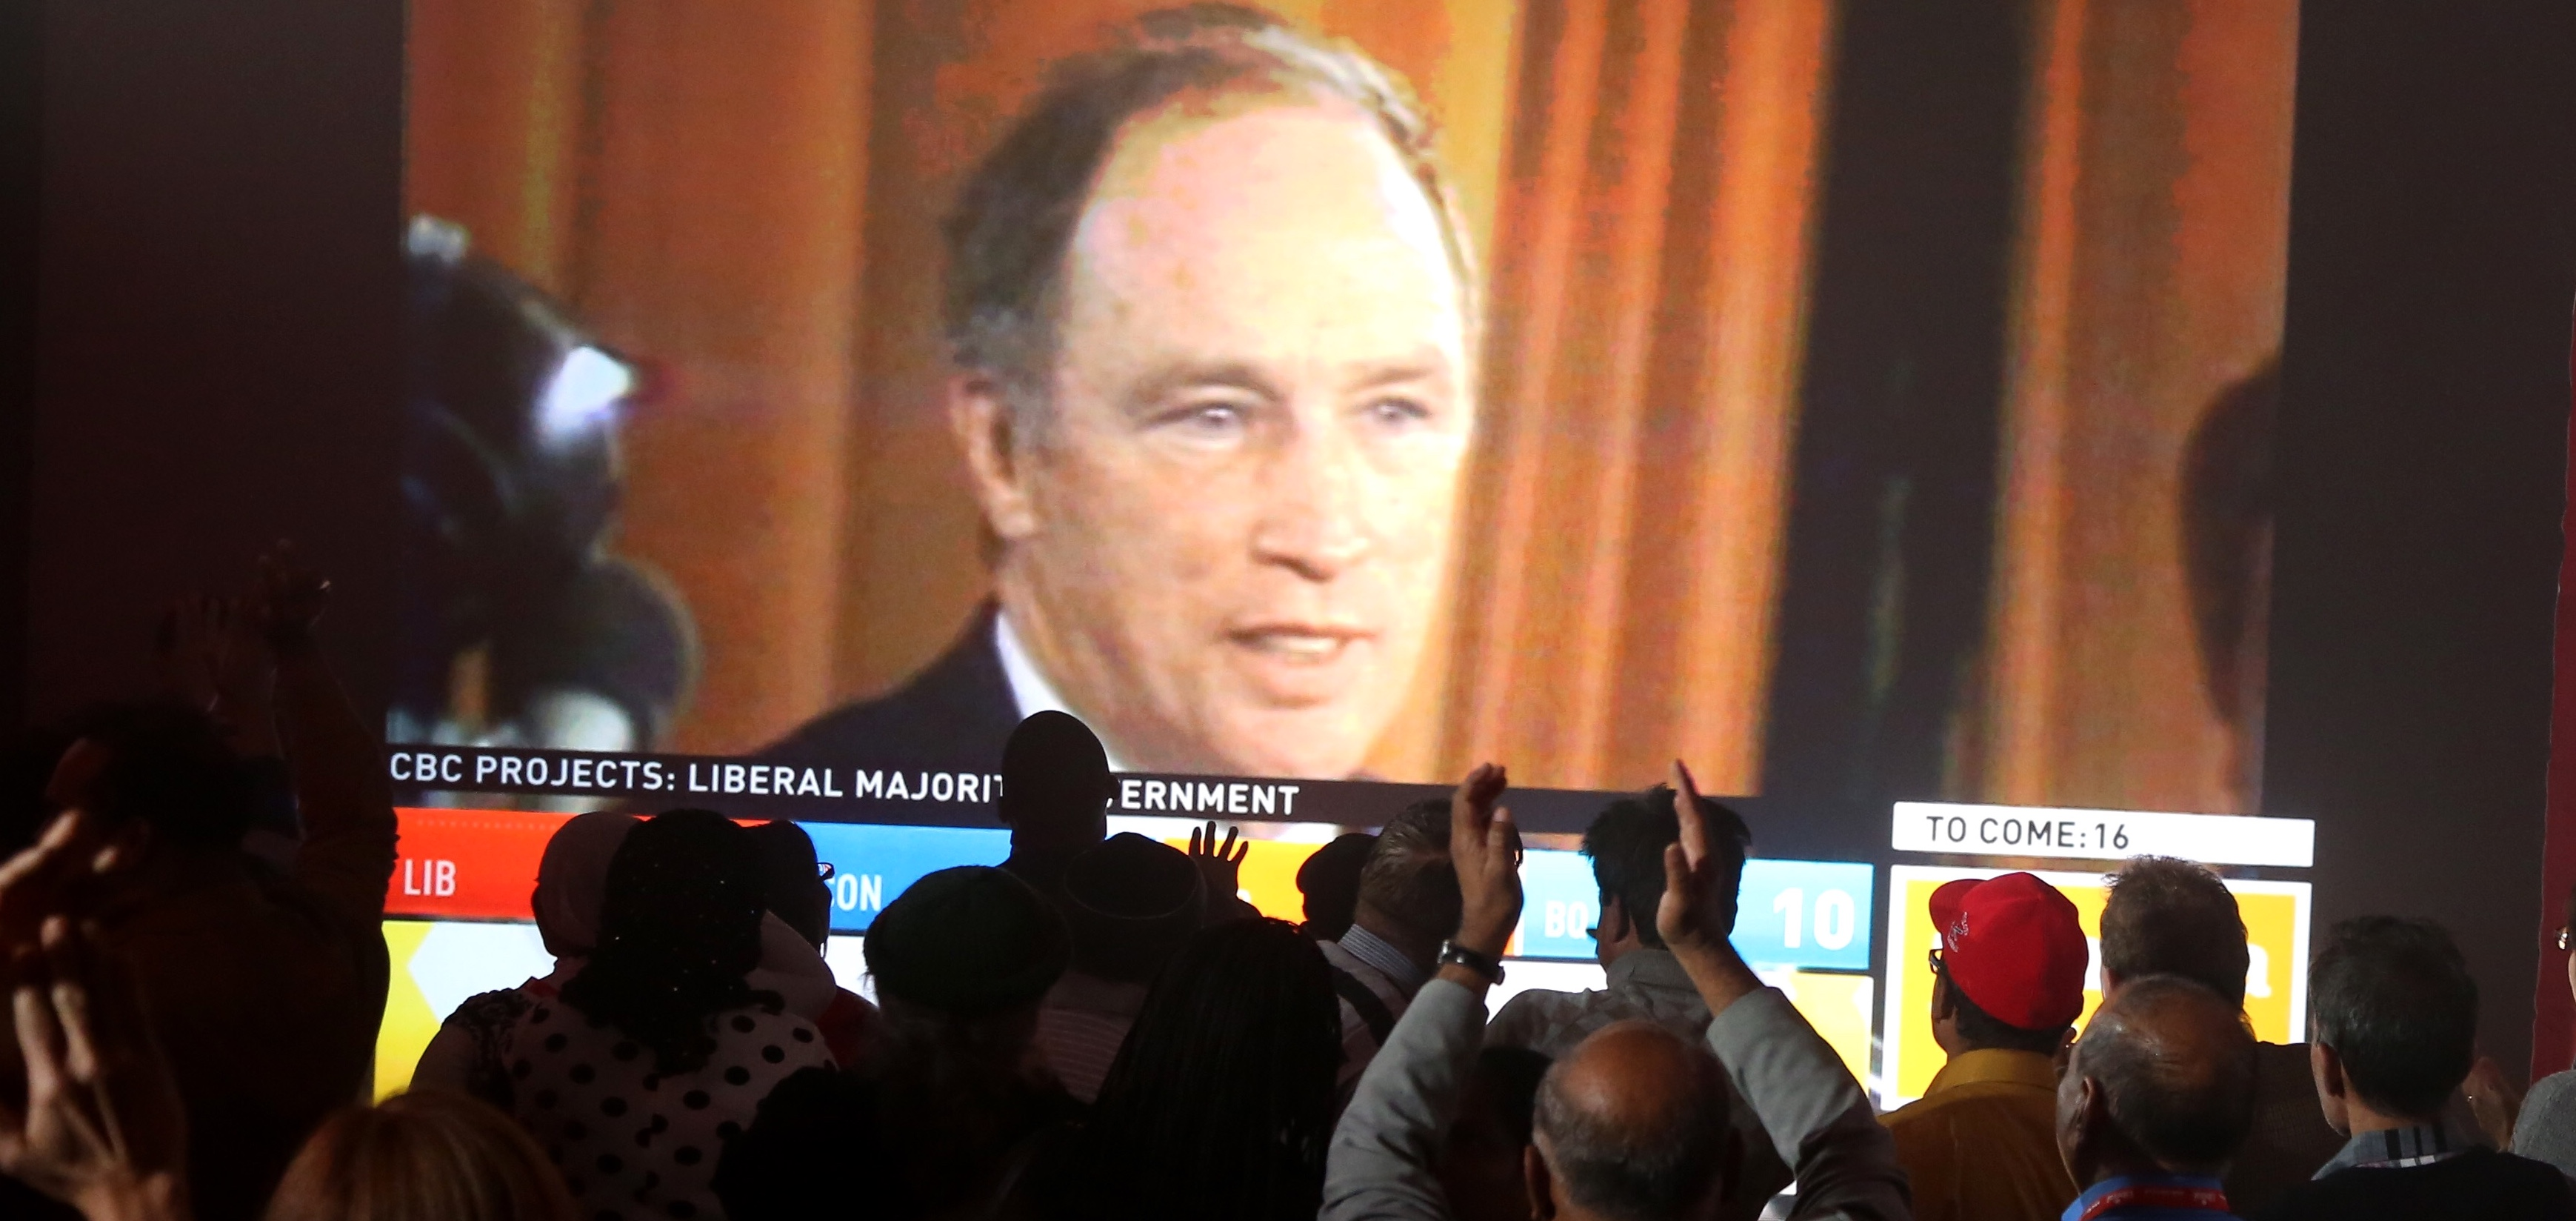 An image of former Canadian Prime Minister Pierre Trudeau is shown on a screen as Liberal Party supporters cheer as they watch results during Canada's federal election in Montreal, Quebec, October 19, 2015. REUTERS/Christinne Muschi